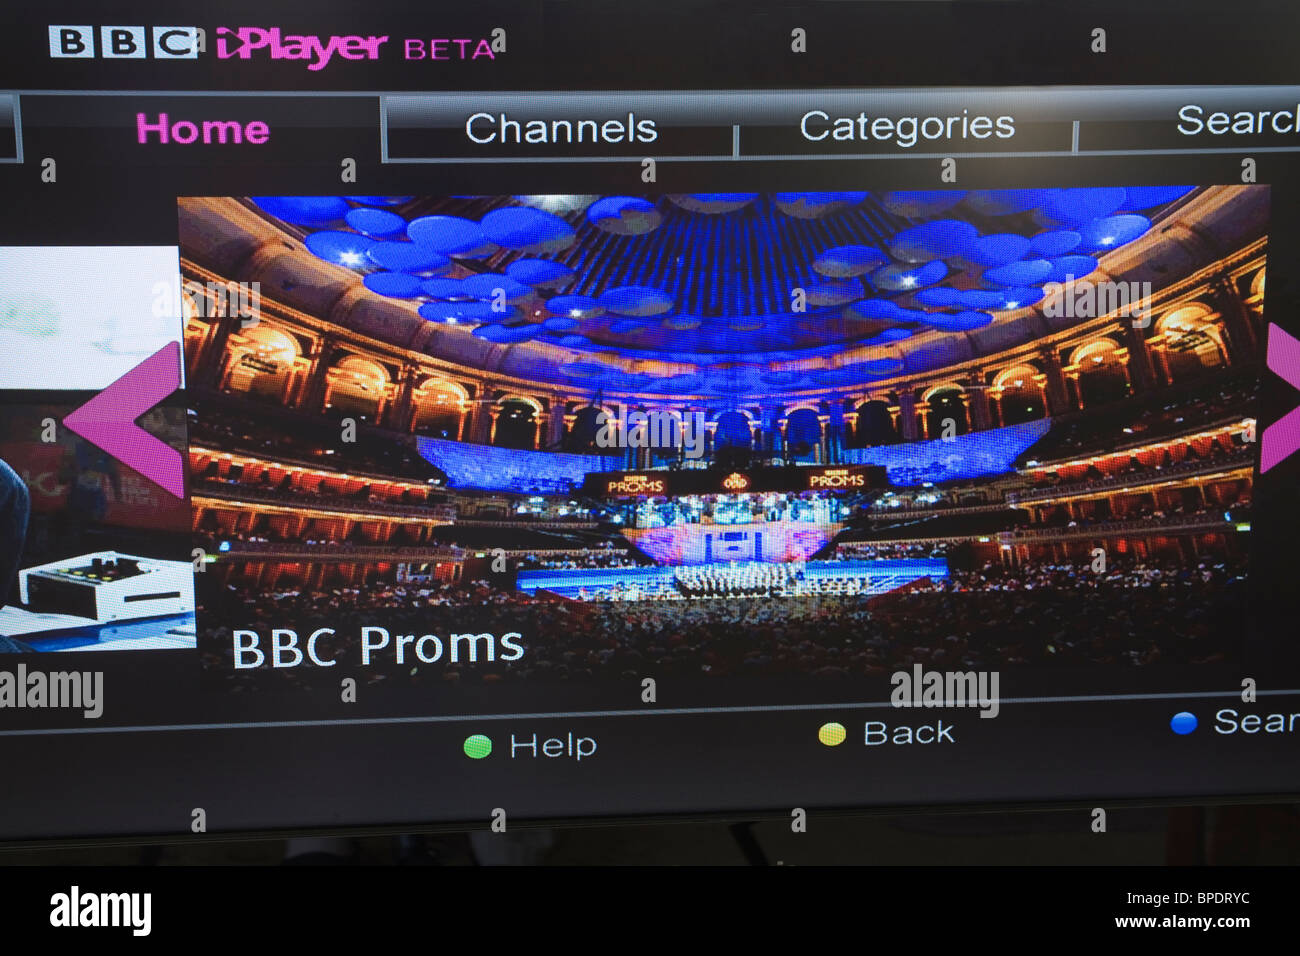 Close up of a flat screen television set showing the BBC i Player BETA home page on Freesat - Stock Image